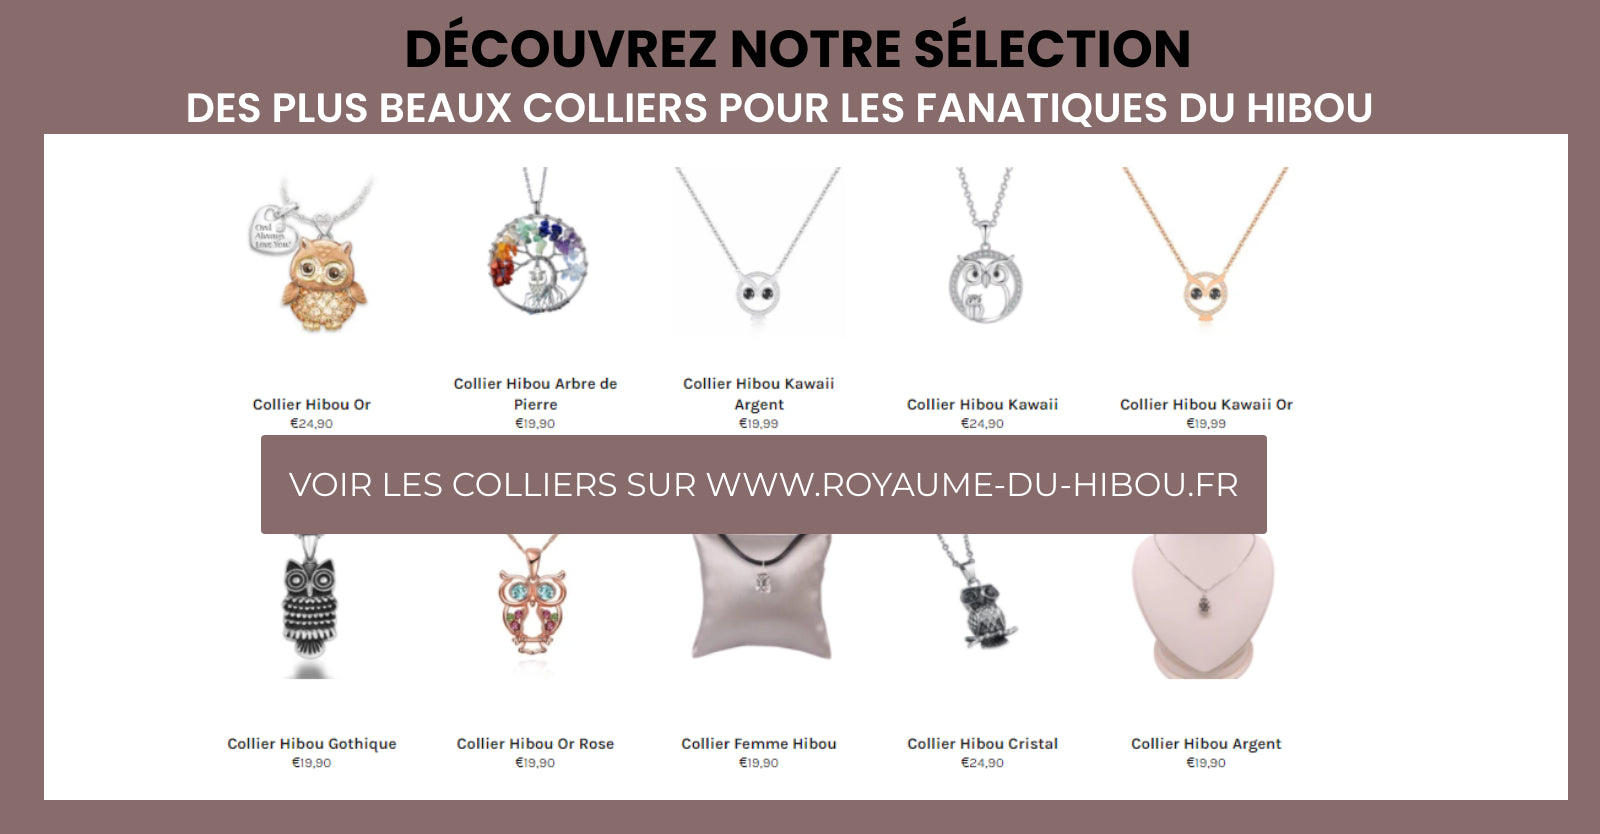 COLLIERS HIBOU